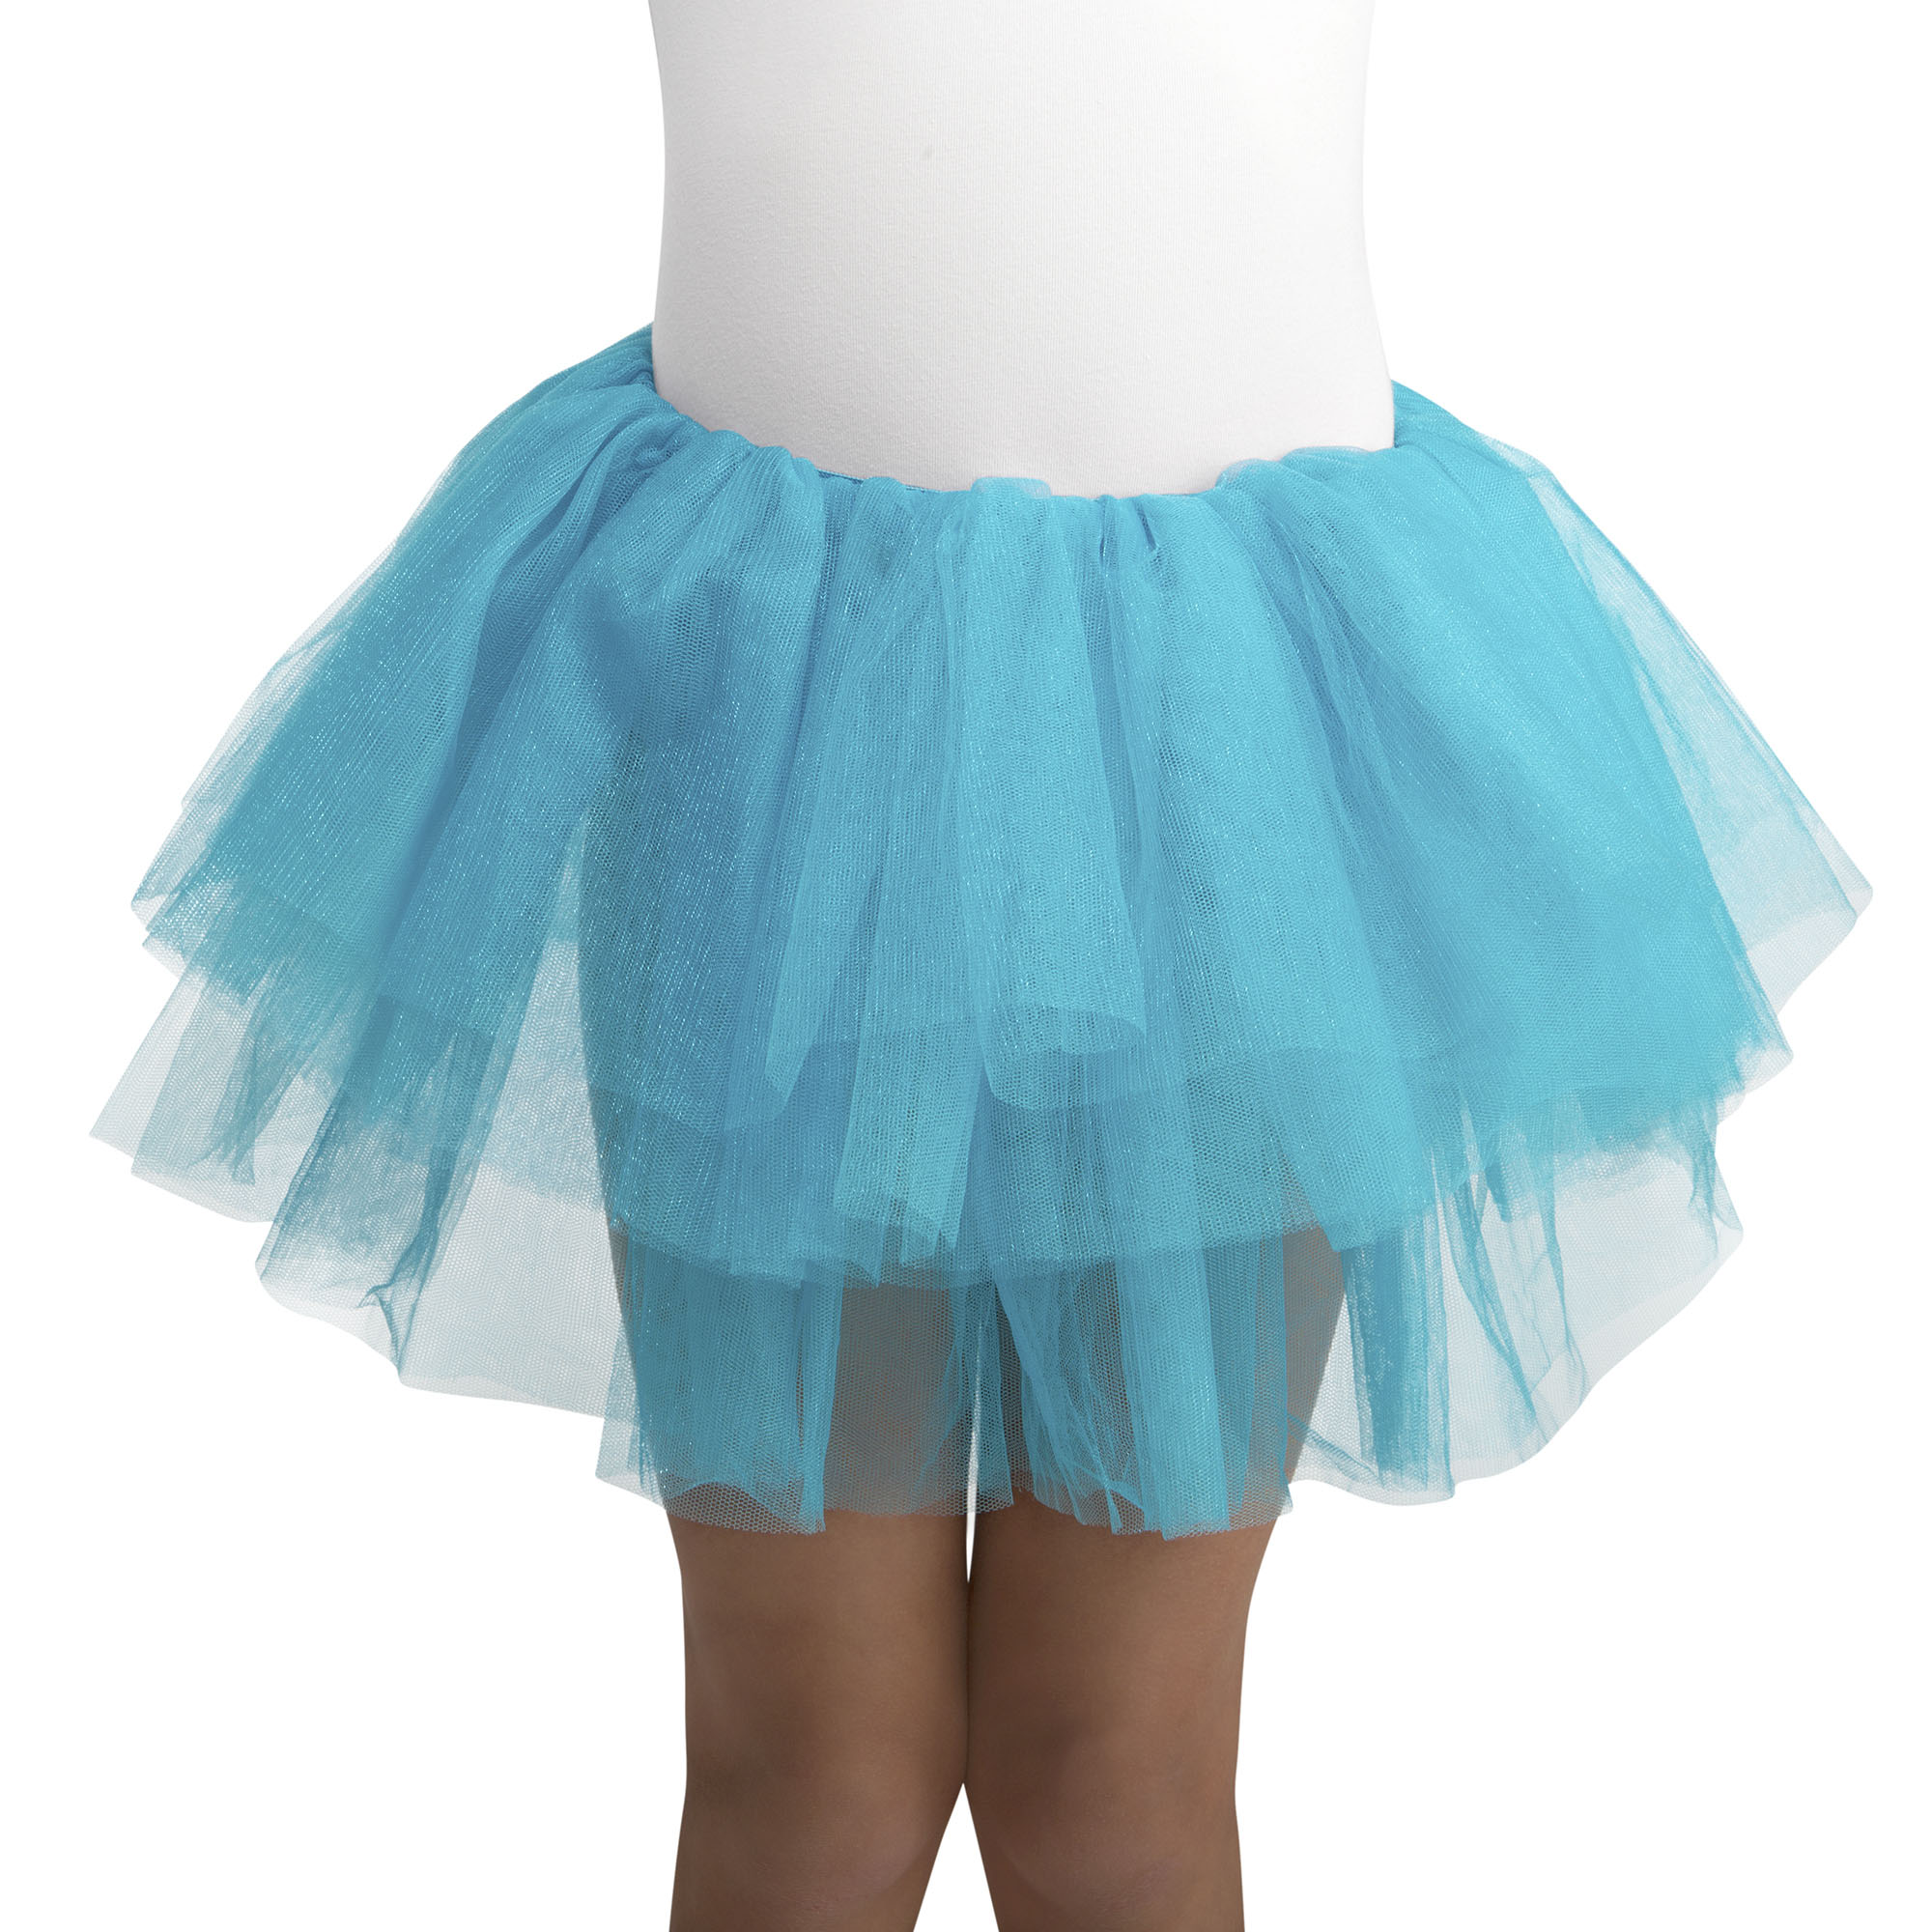 Girl Teal Deluxe Tutu One Size Halloween Dress Up / Costume Accessory